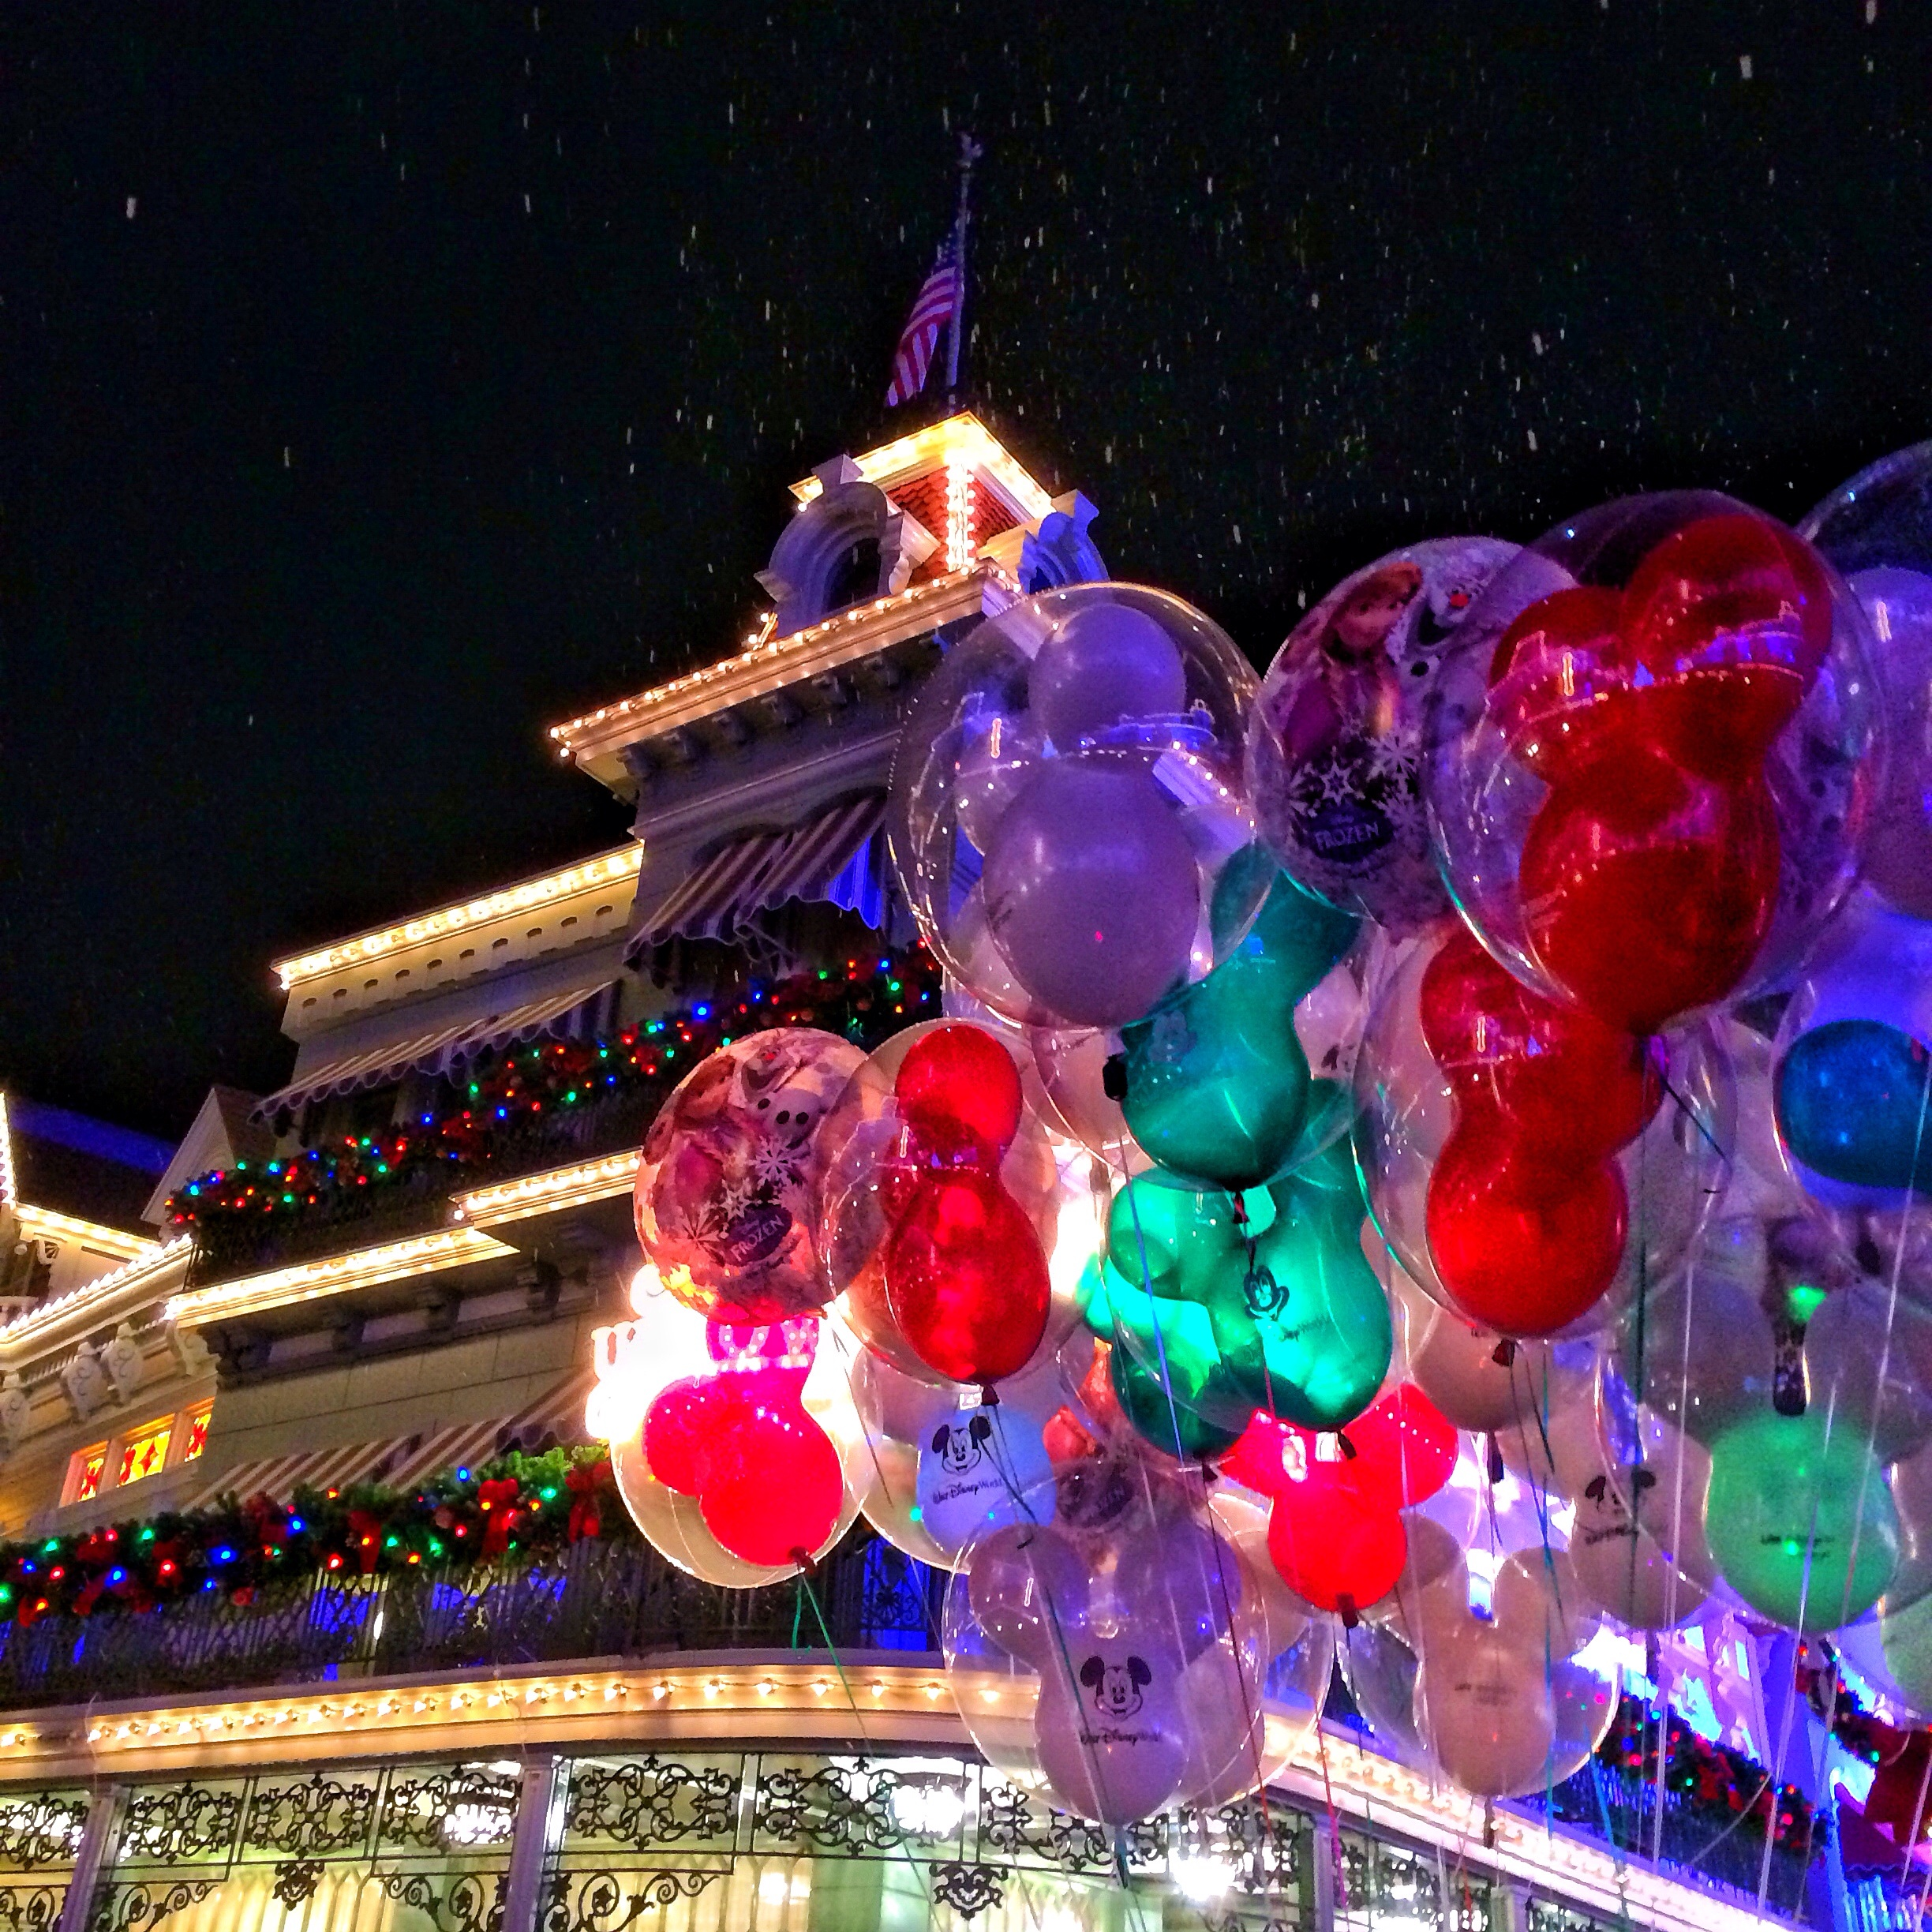 2015 dates and discount ticket prices for mickeys very merry christmas party at walt disney worlds magic kingdom disney every day - Disney Christmas Party